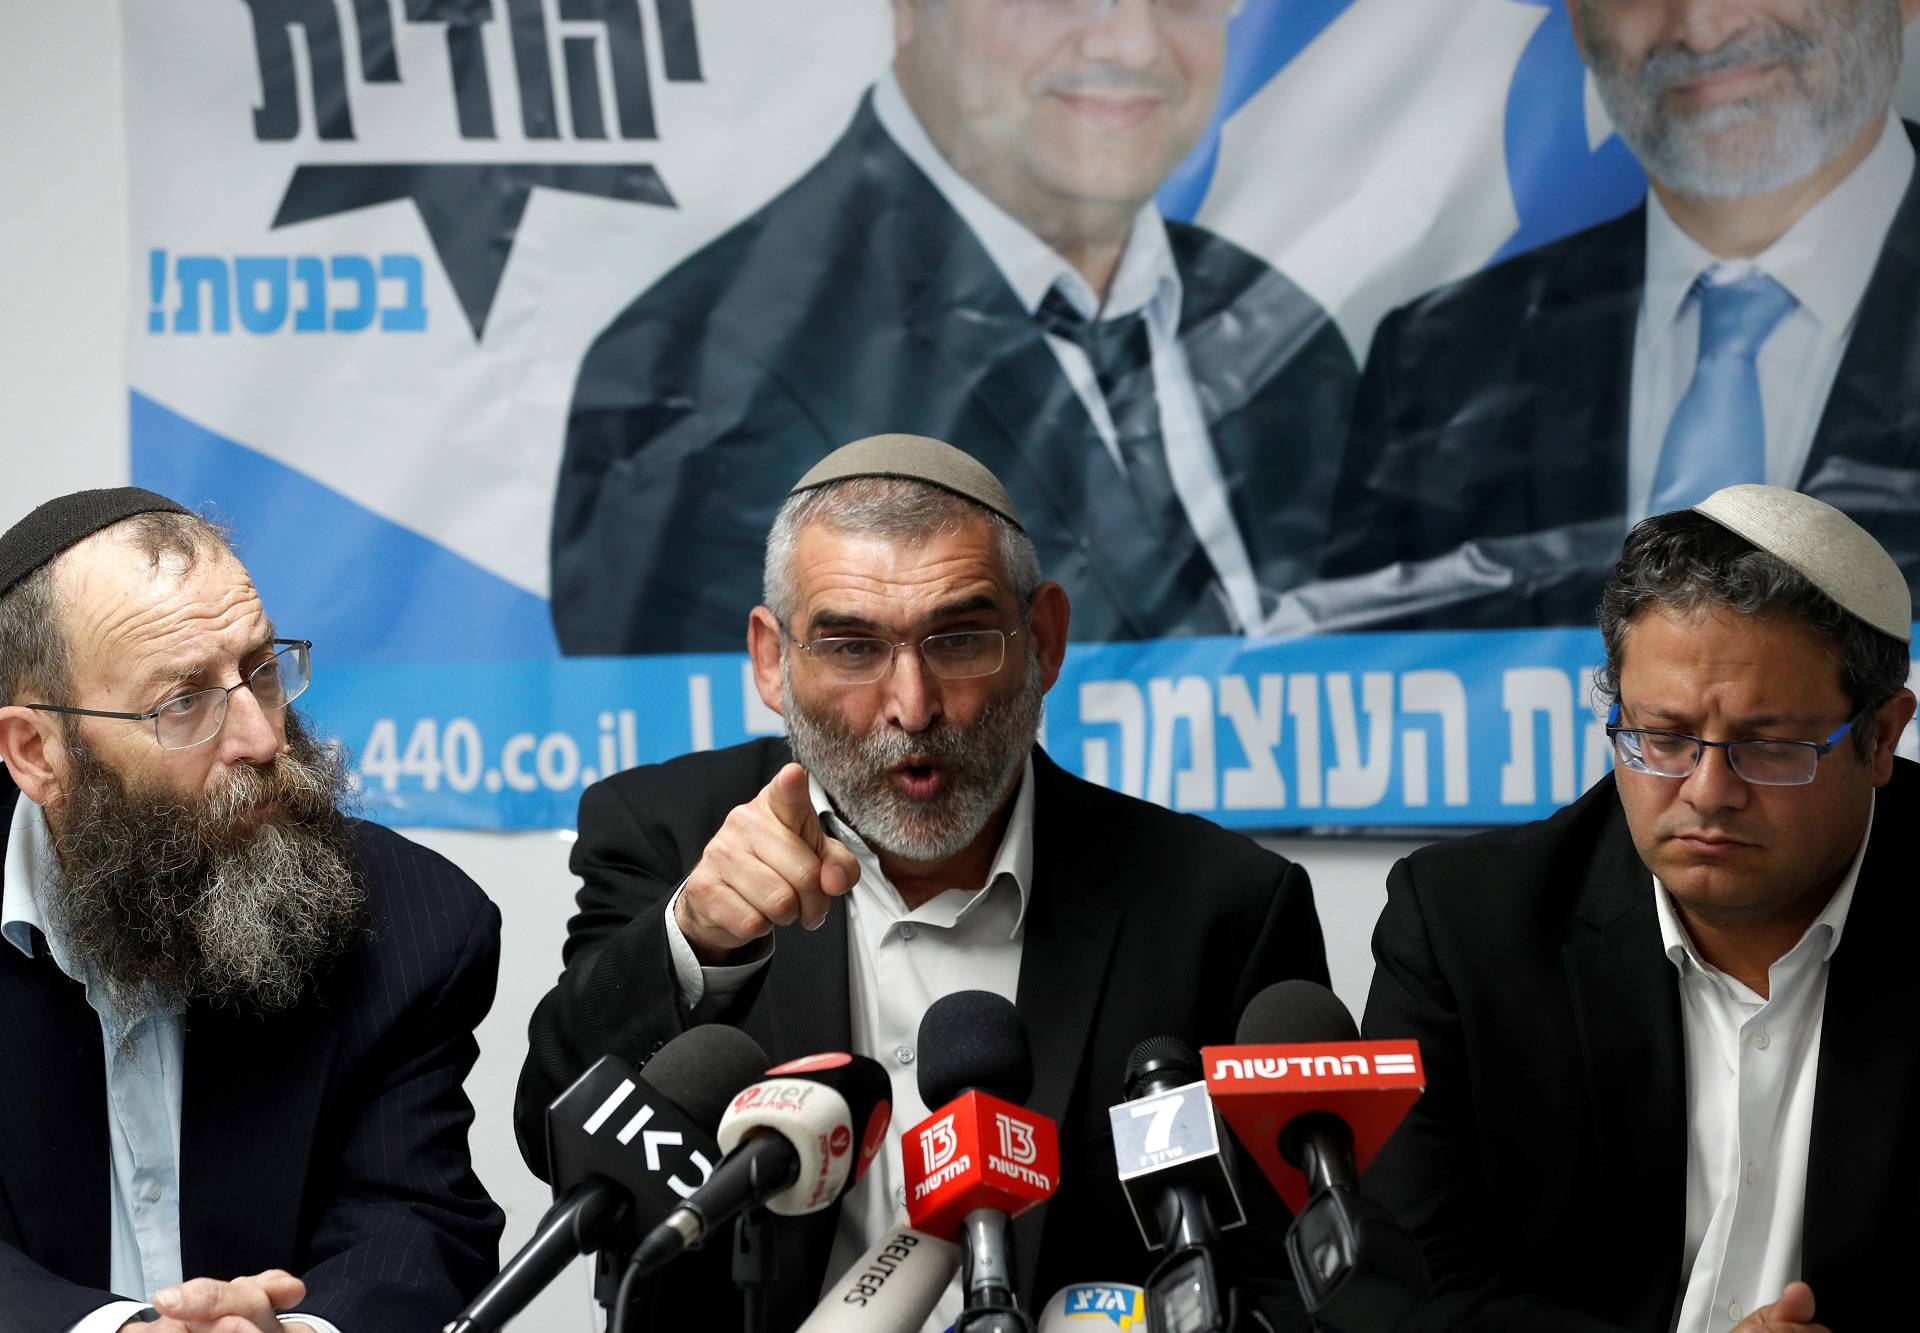 Michael Ben-Ari from the Jewish Power party delivers a statement to the media together with his party's members, Baruch Marzel and Itamar Ben-Gvir in Jerusalem